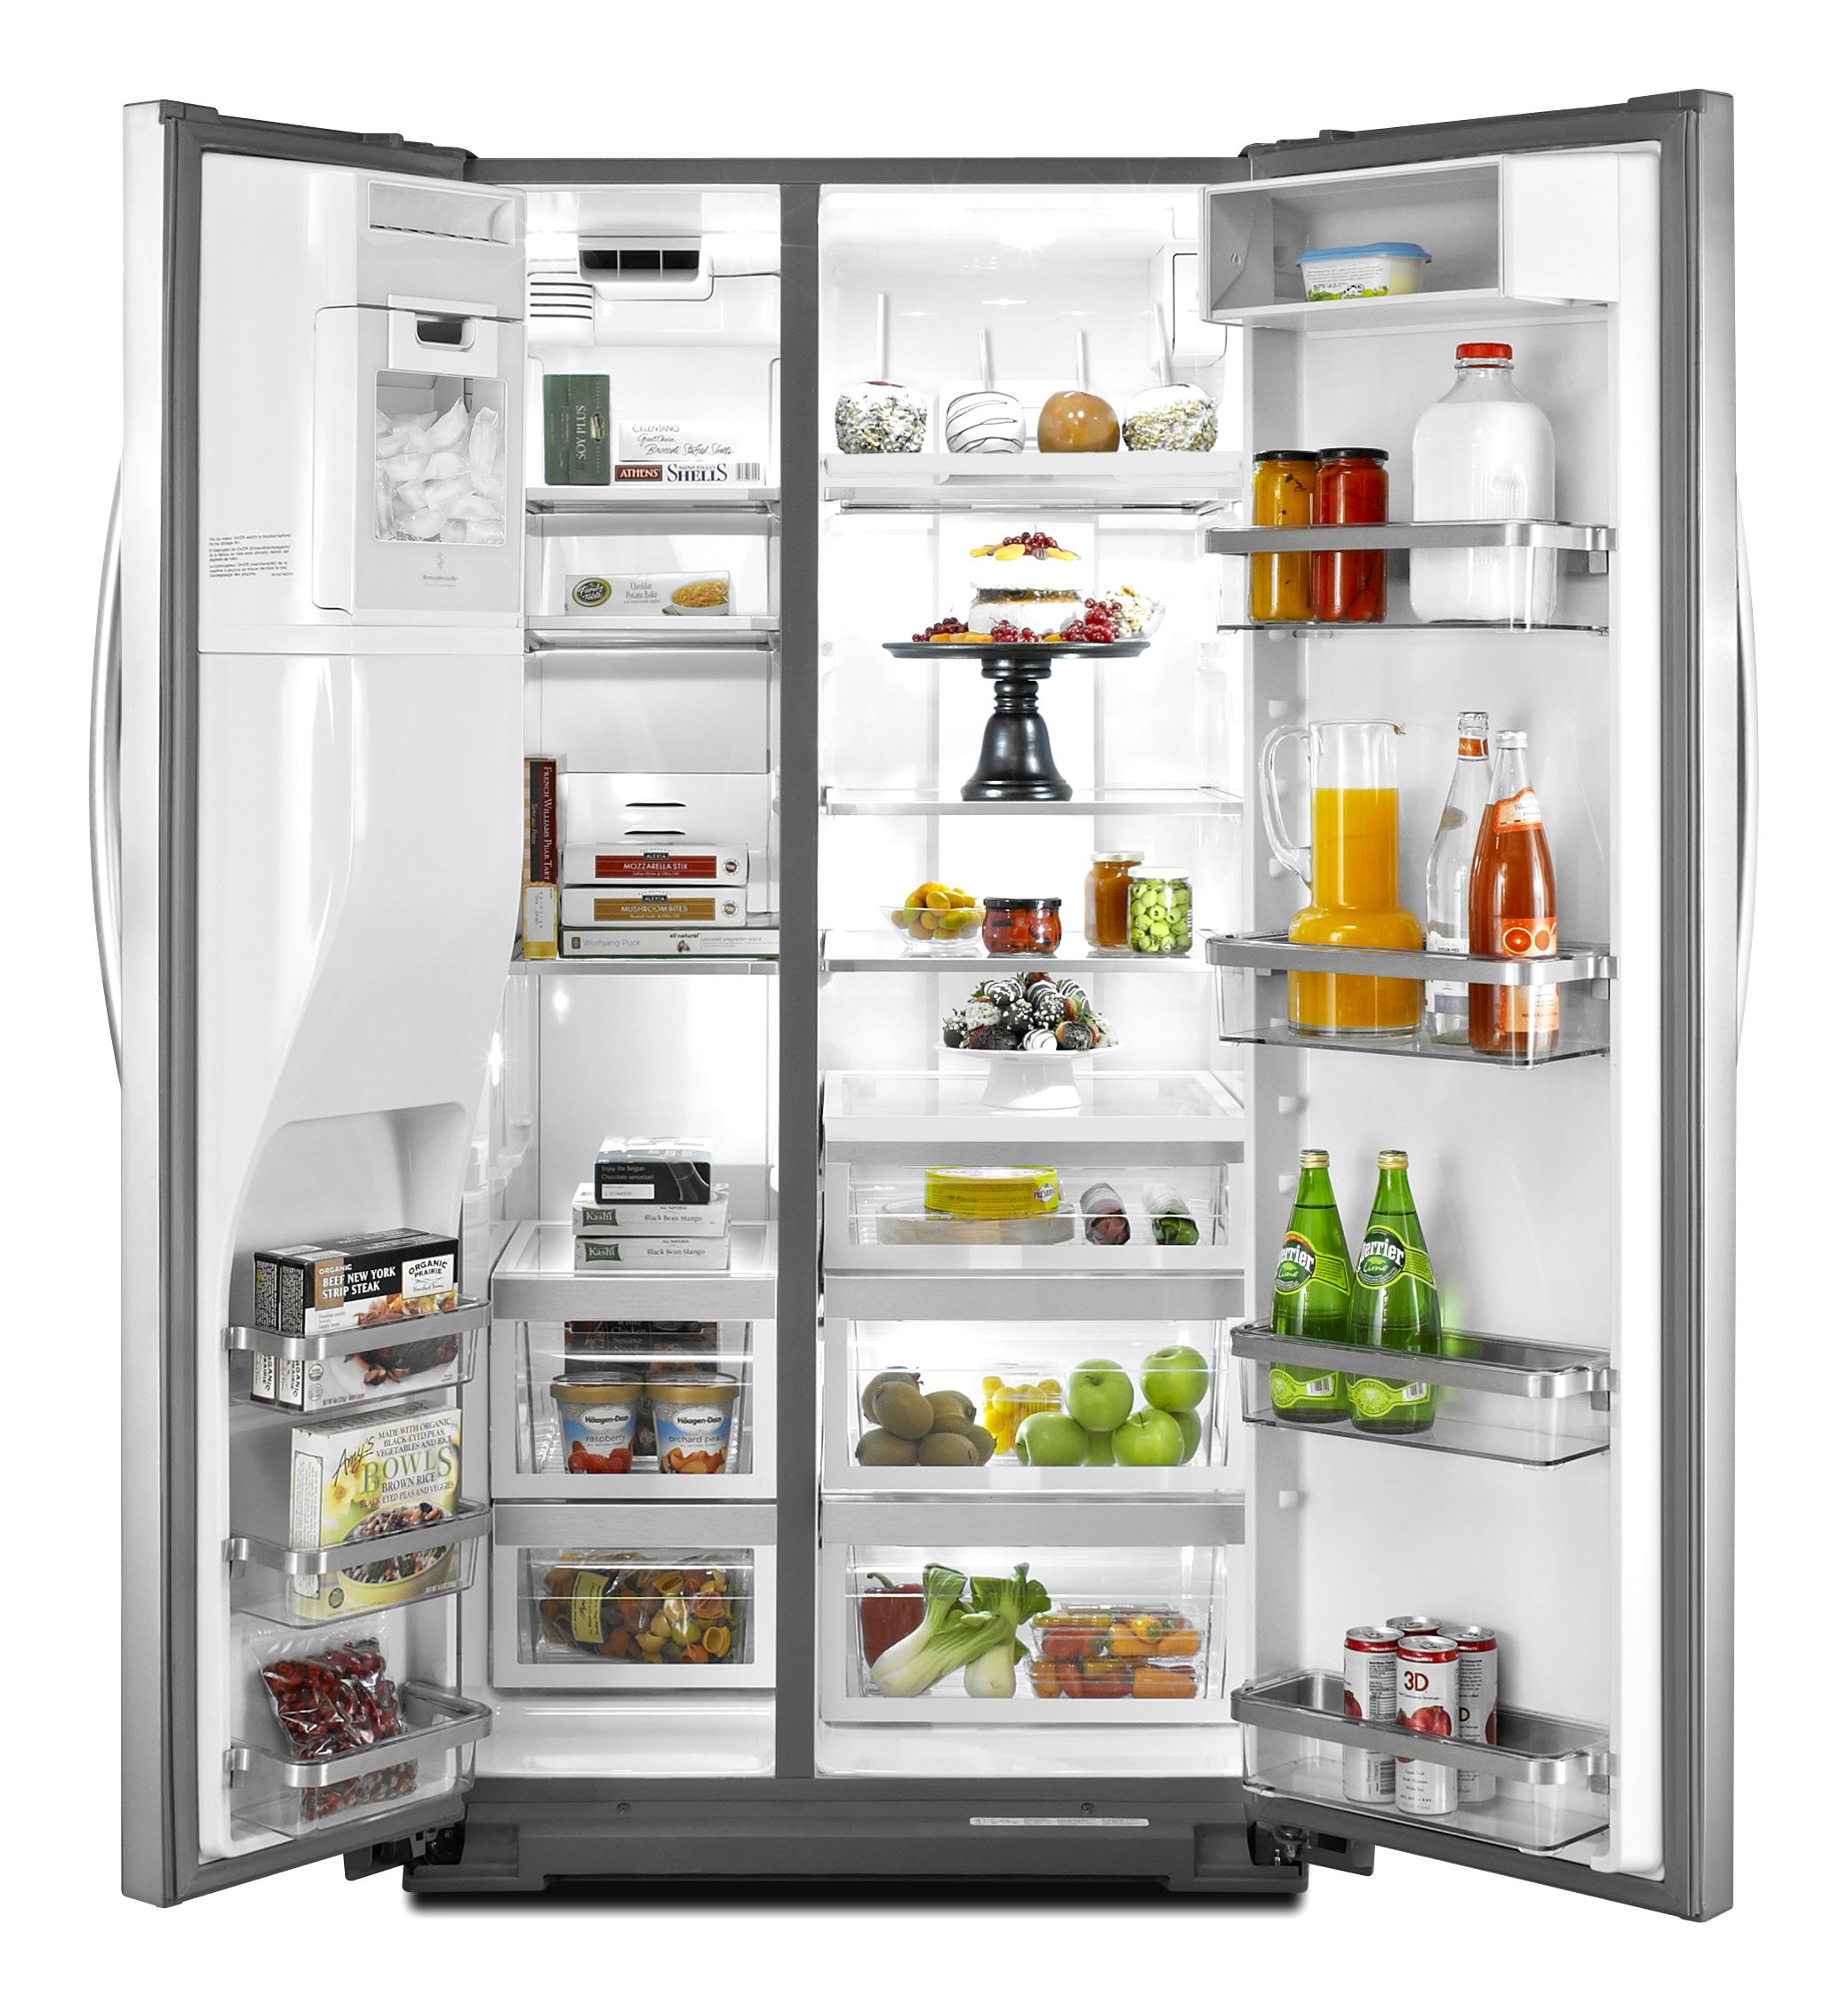 KitchenAid 26.4 cu. ft. Side-by-Side Refrigerator - Monochromatic Stainless Steel (DISCO'D)